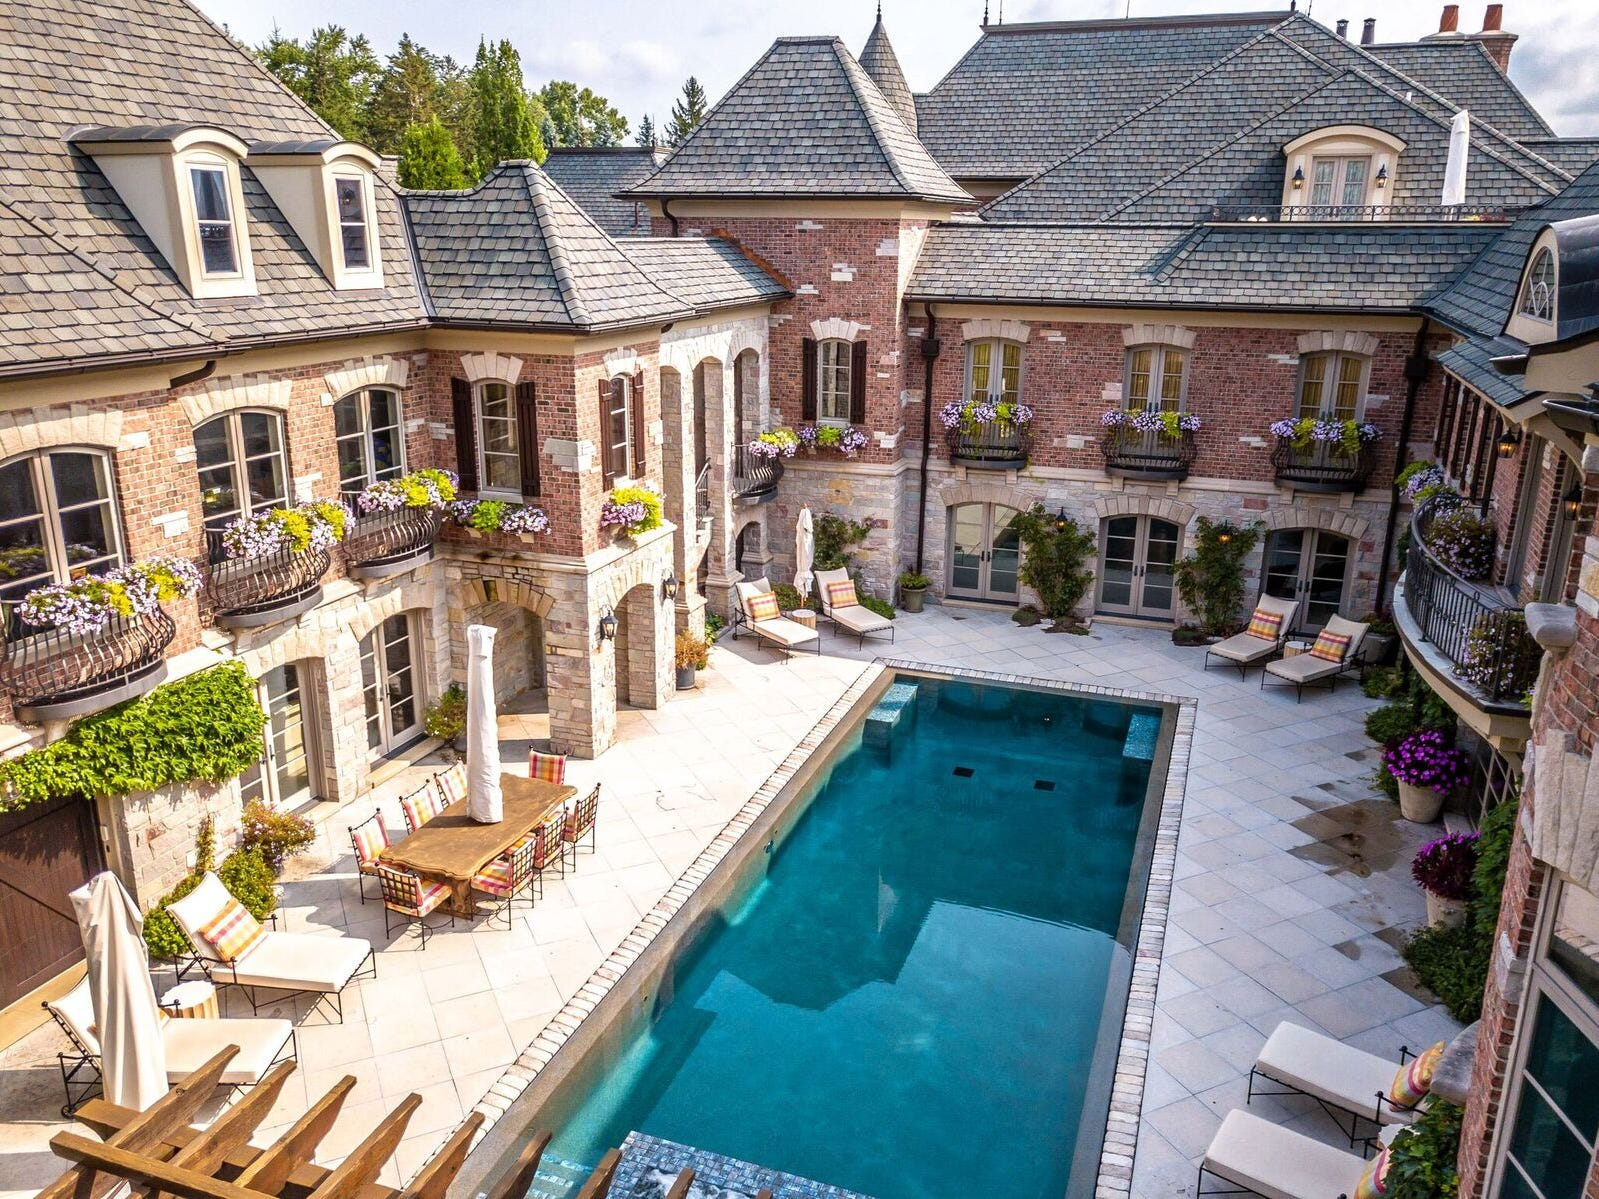 This Italian villa is located at 2756 Turtle Bluff Dr. in Bloomfield Hills.